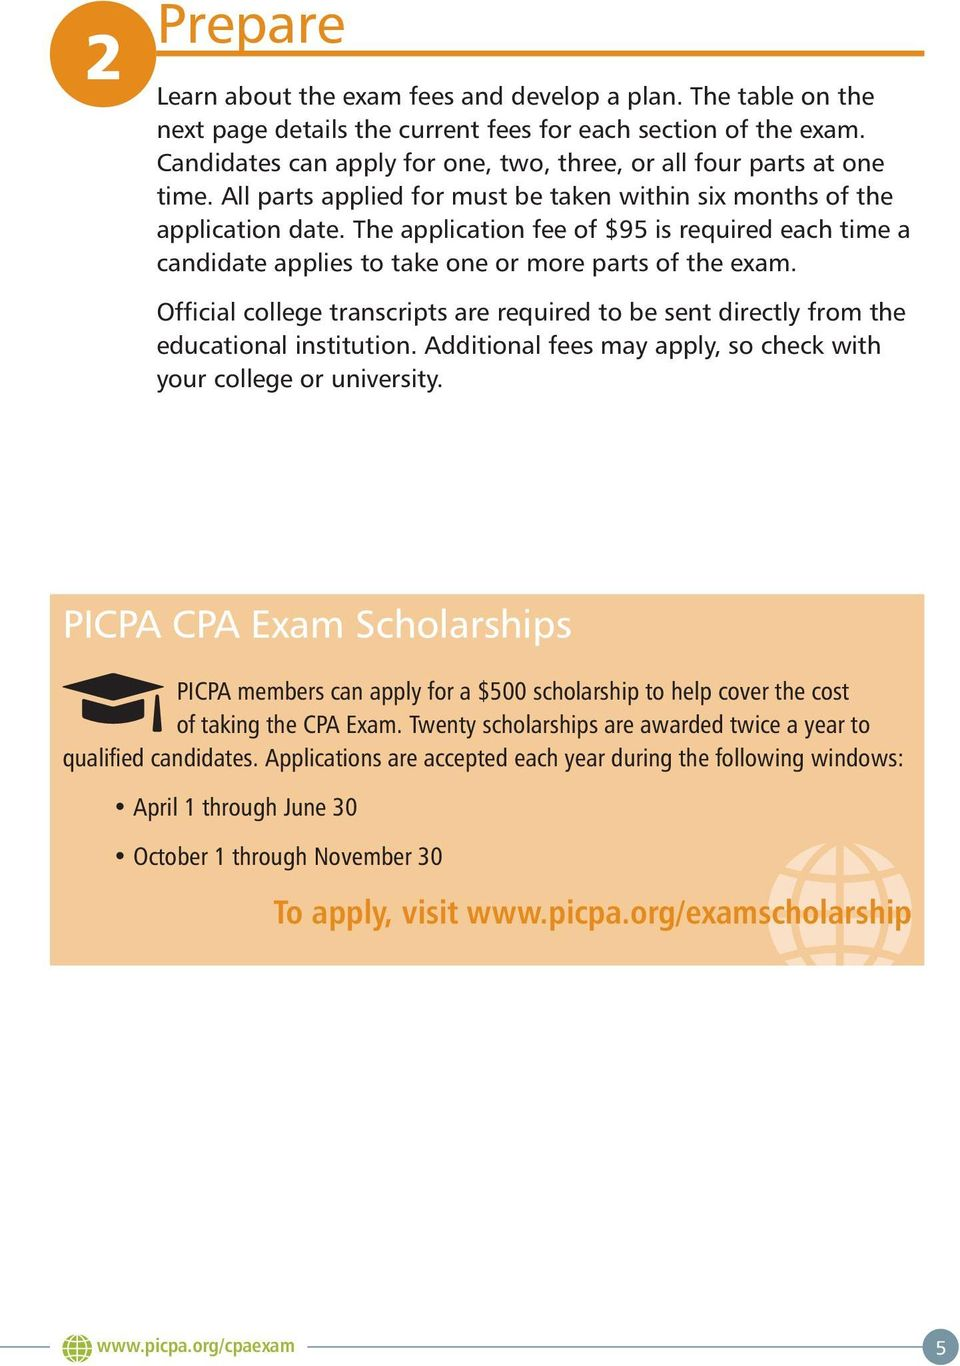 The application fee of $95 is required each time a candidate applies to take one or more parts of the exam.